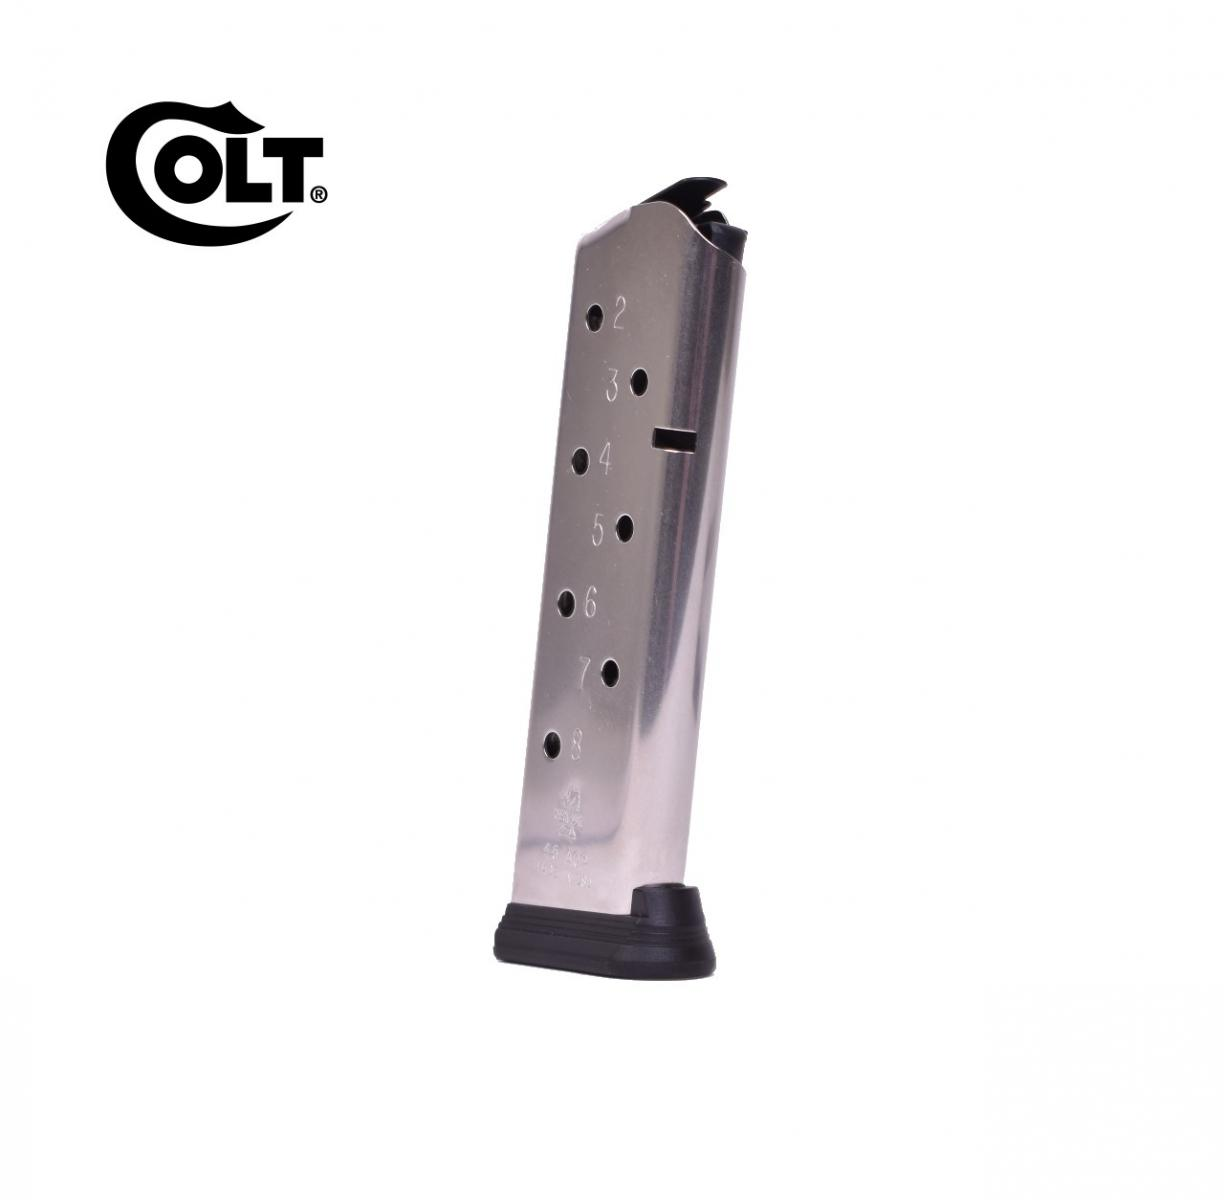 Chargeur 8 cps pour COLT 1911 Government Cal. 45 ACP Inox